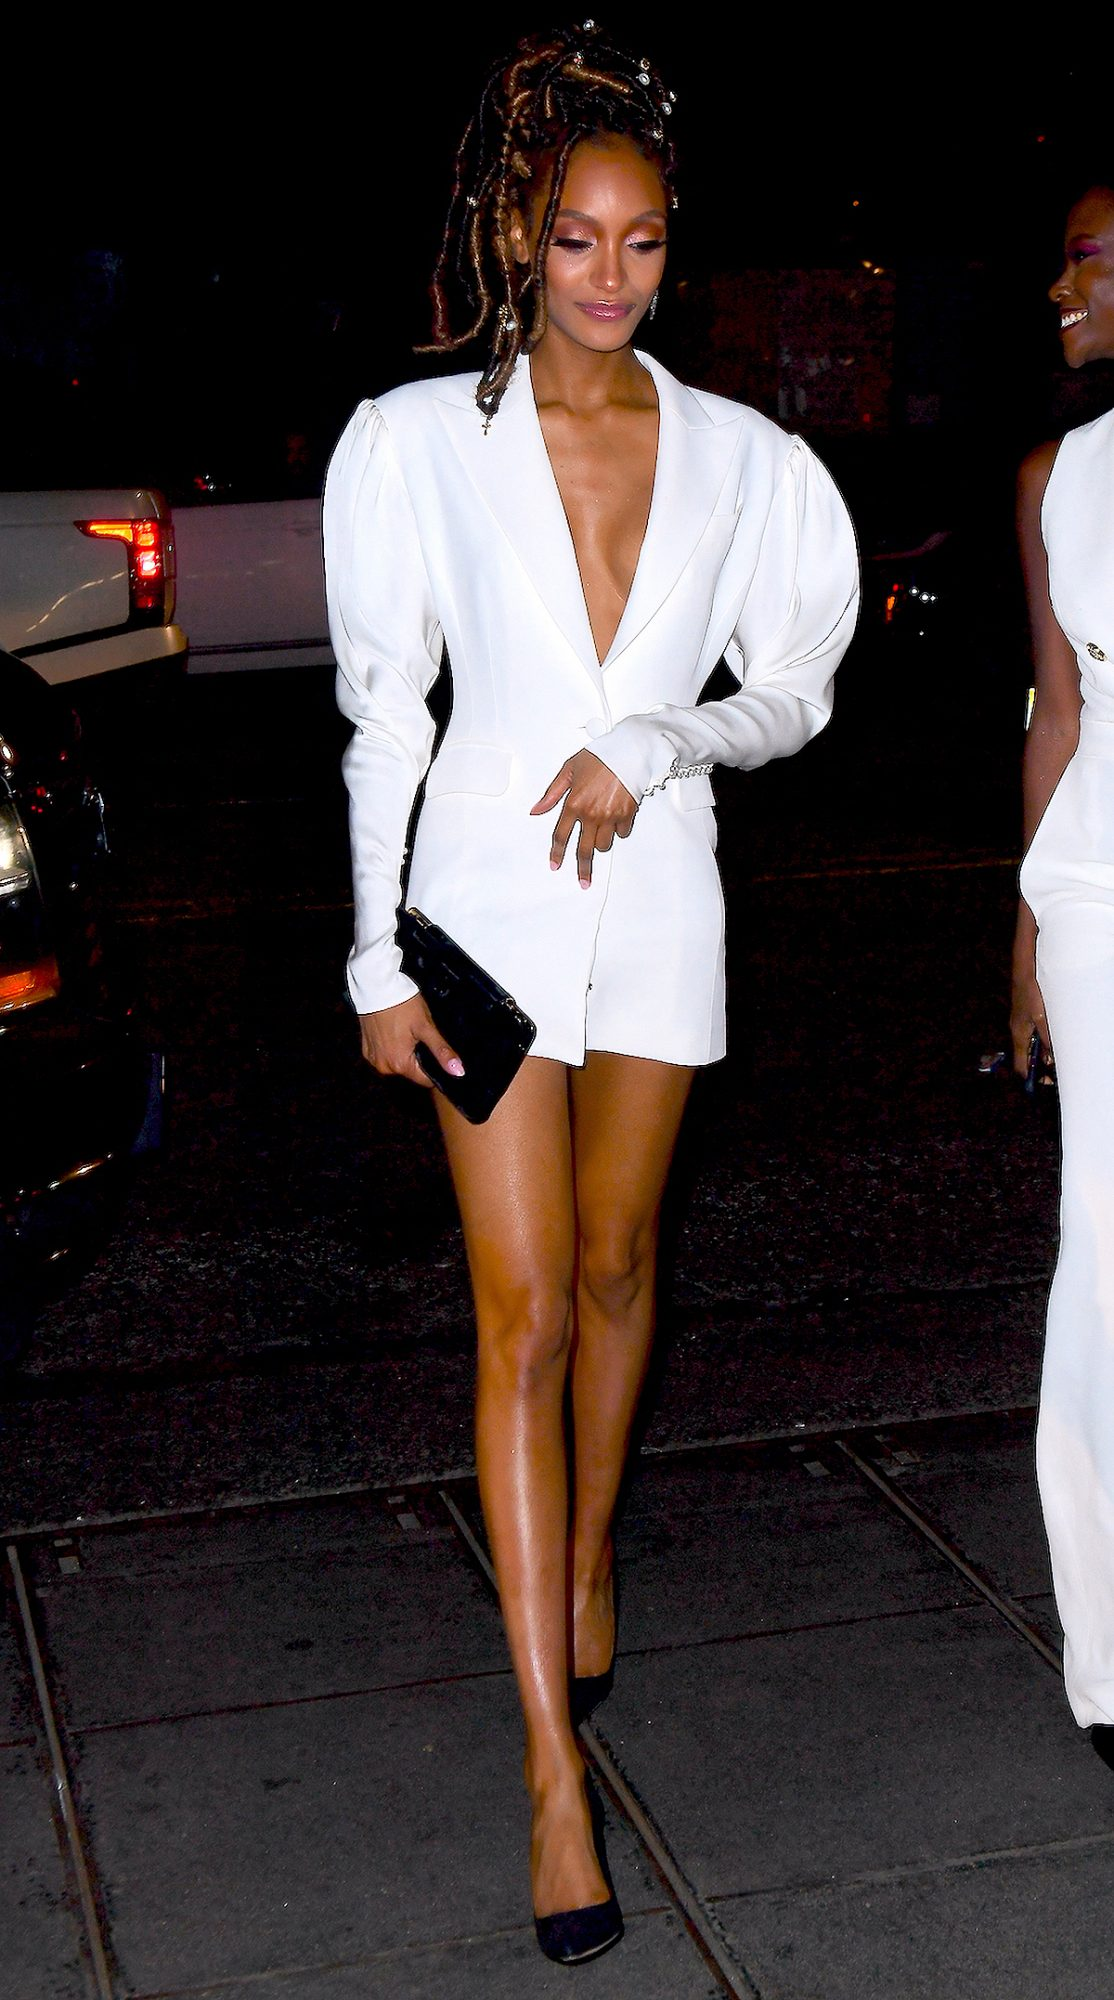 Hollywood's Elite Arrive at Up and Down Nightclub for Rihanna's Met Gala After Party